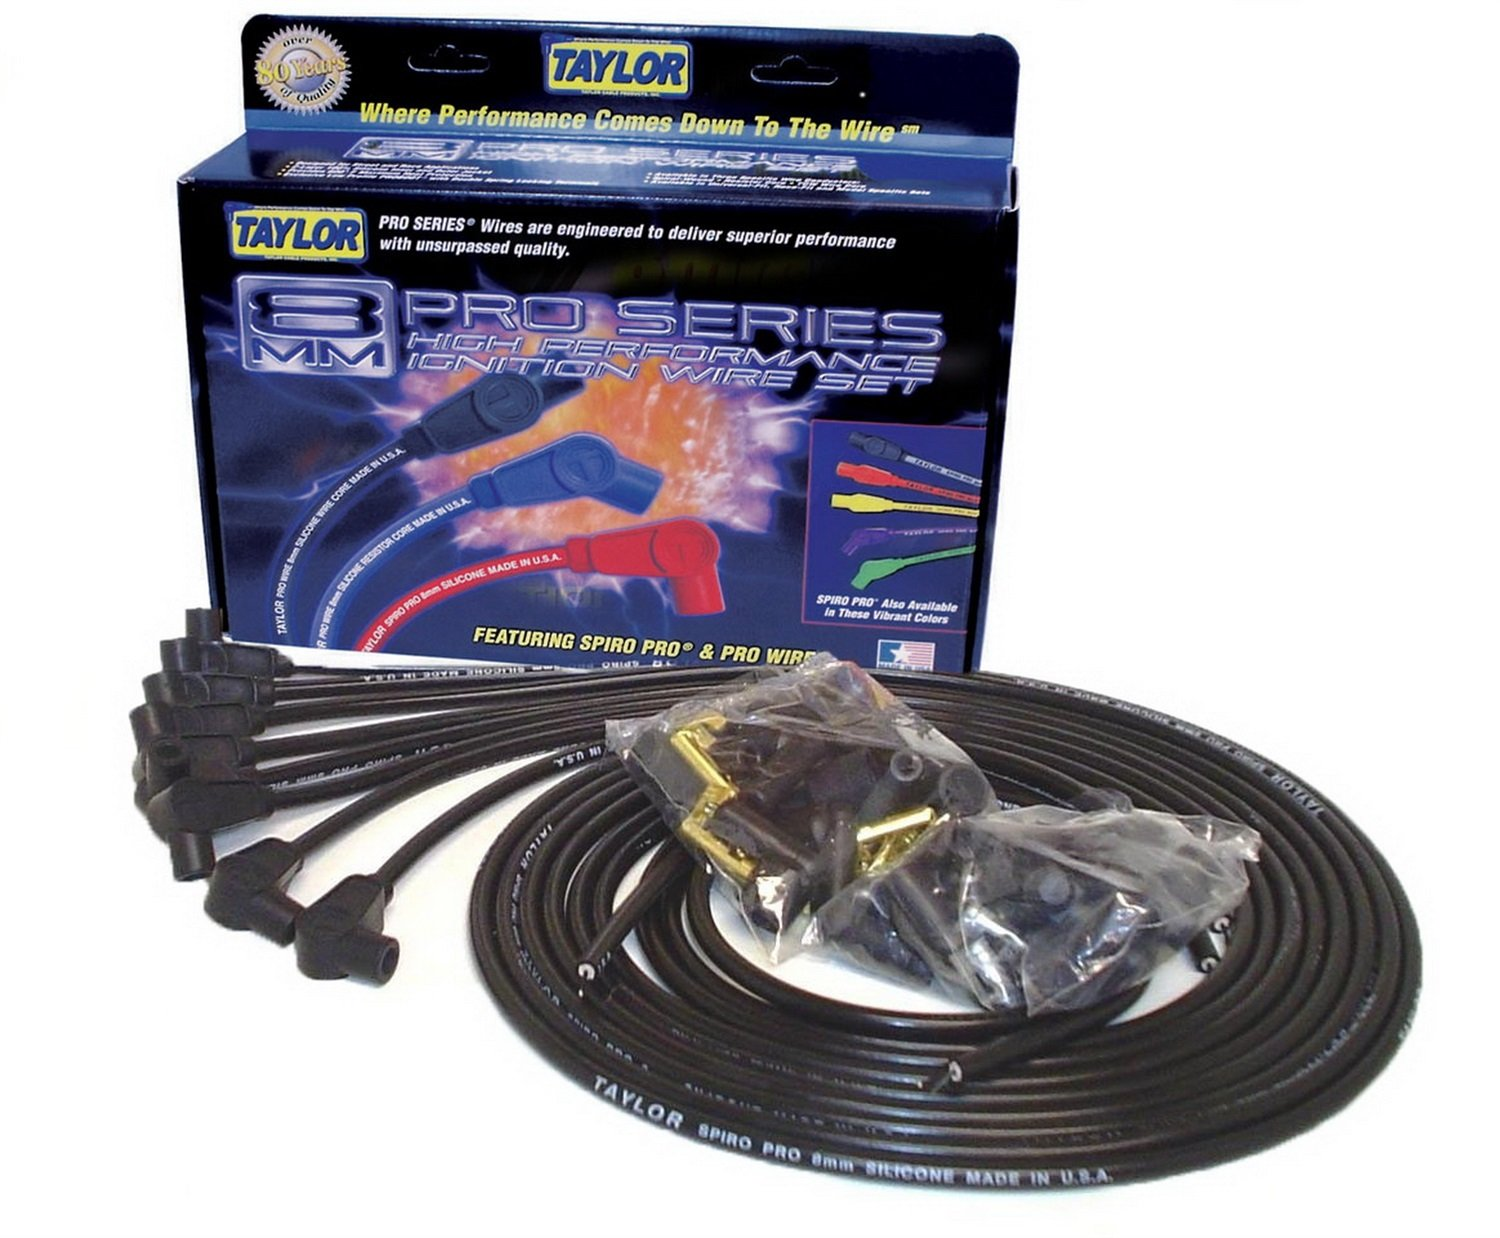 Taylor Cable 73051 Spiro-Pro Black Spark Plug Wire Set by Taylor Cable